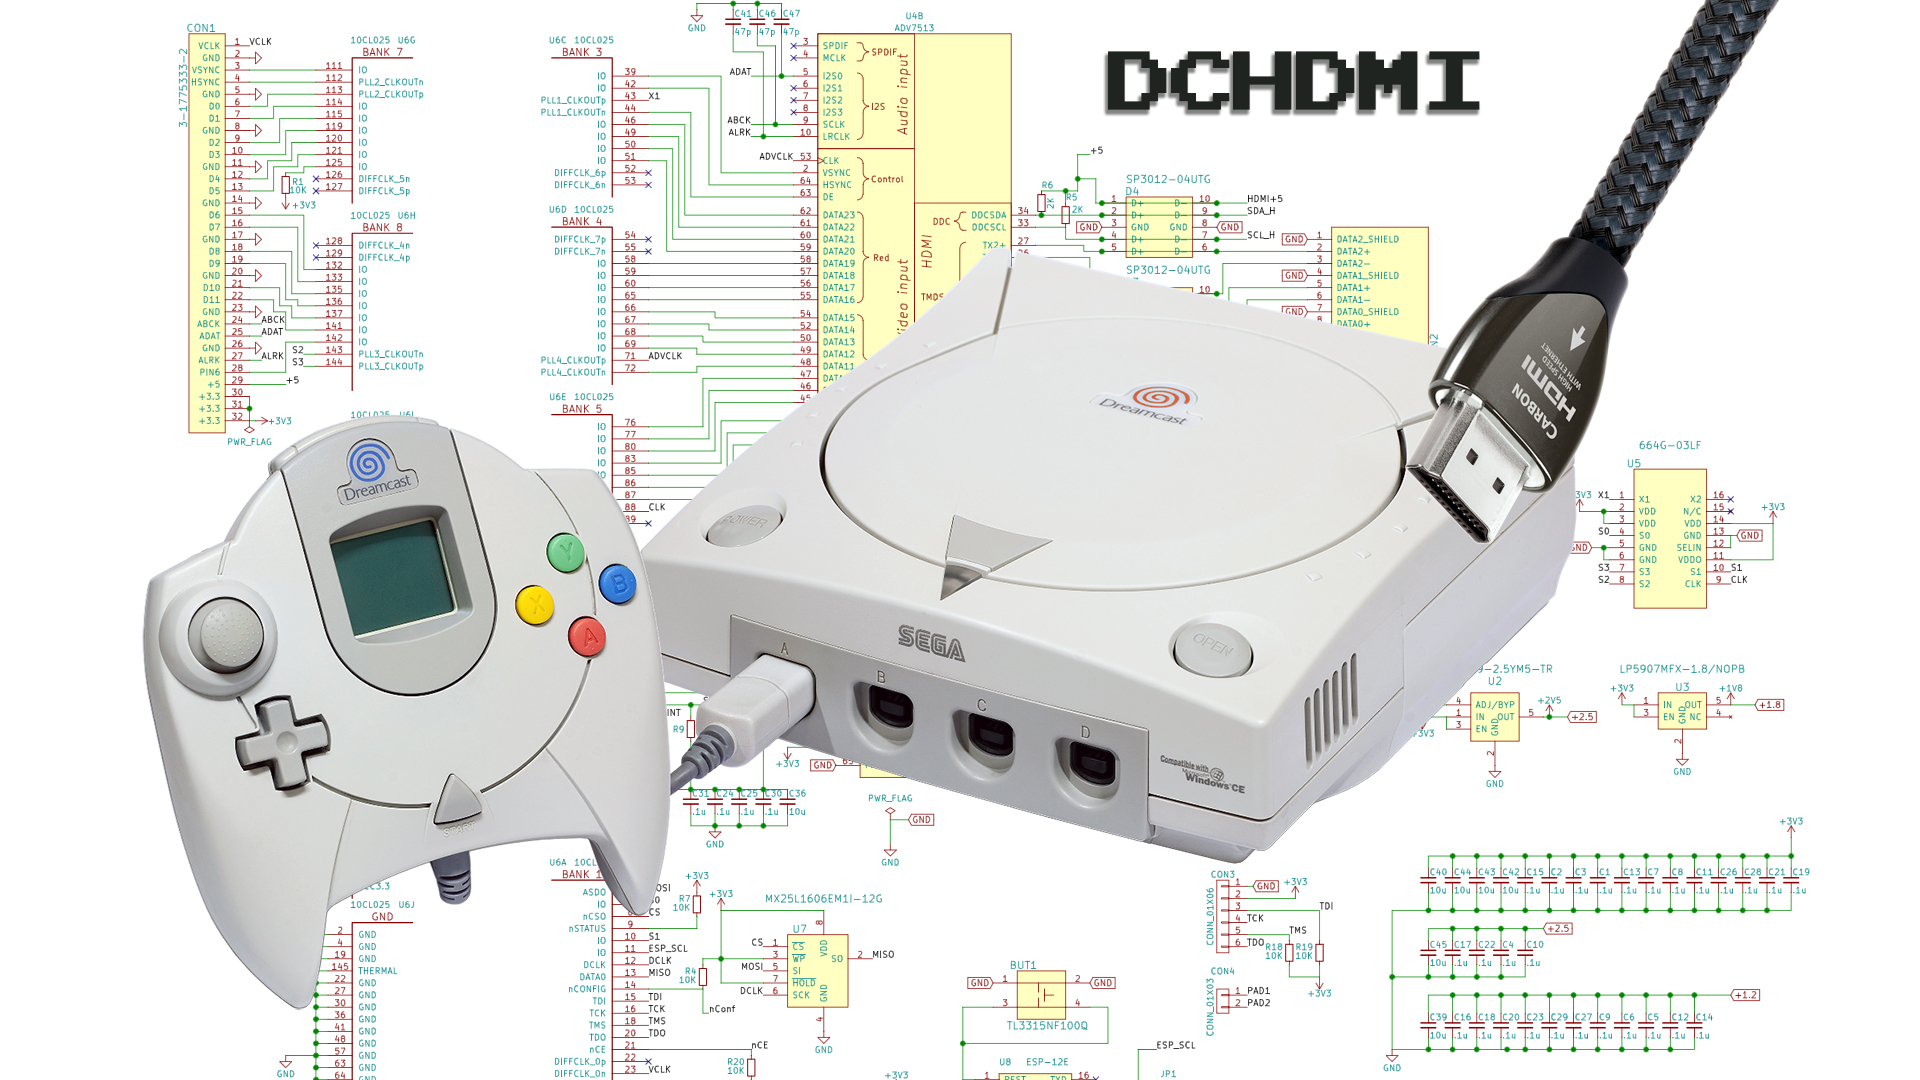 New DCHDMI Firmware Released